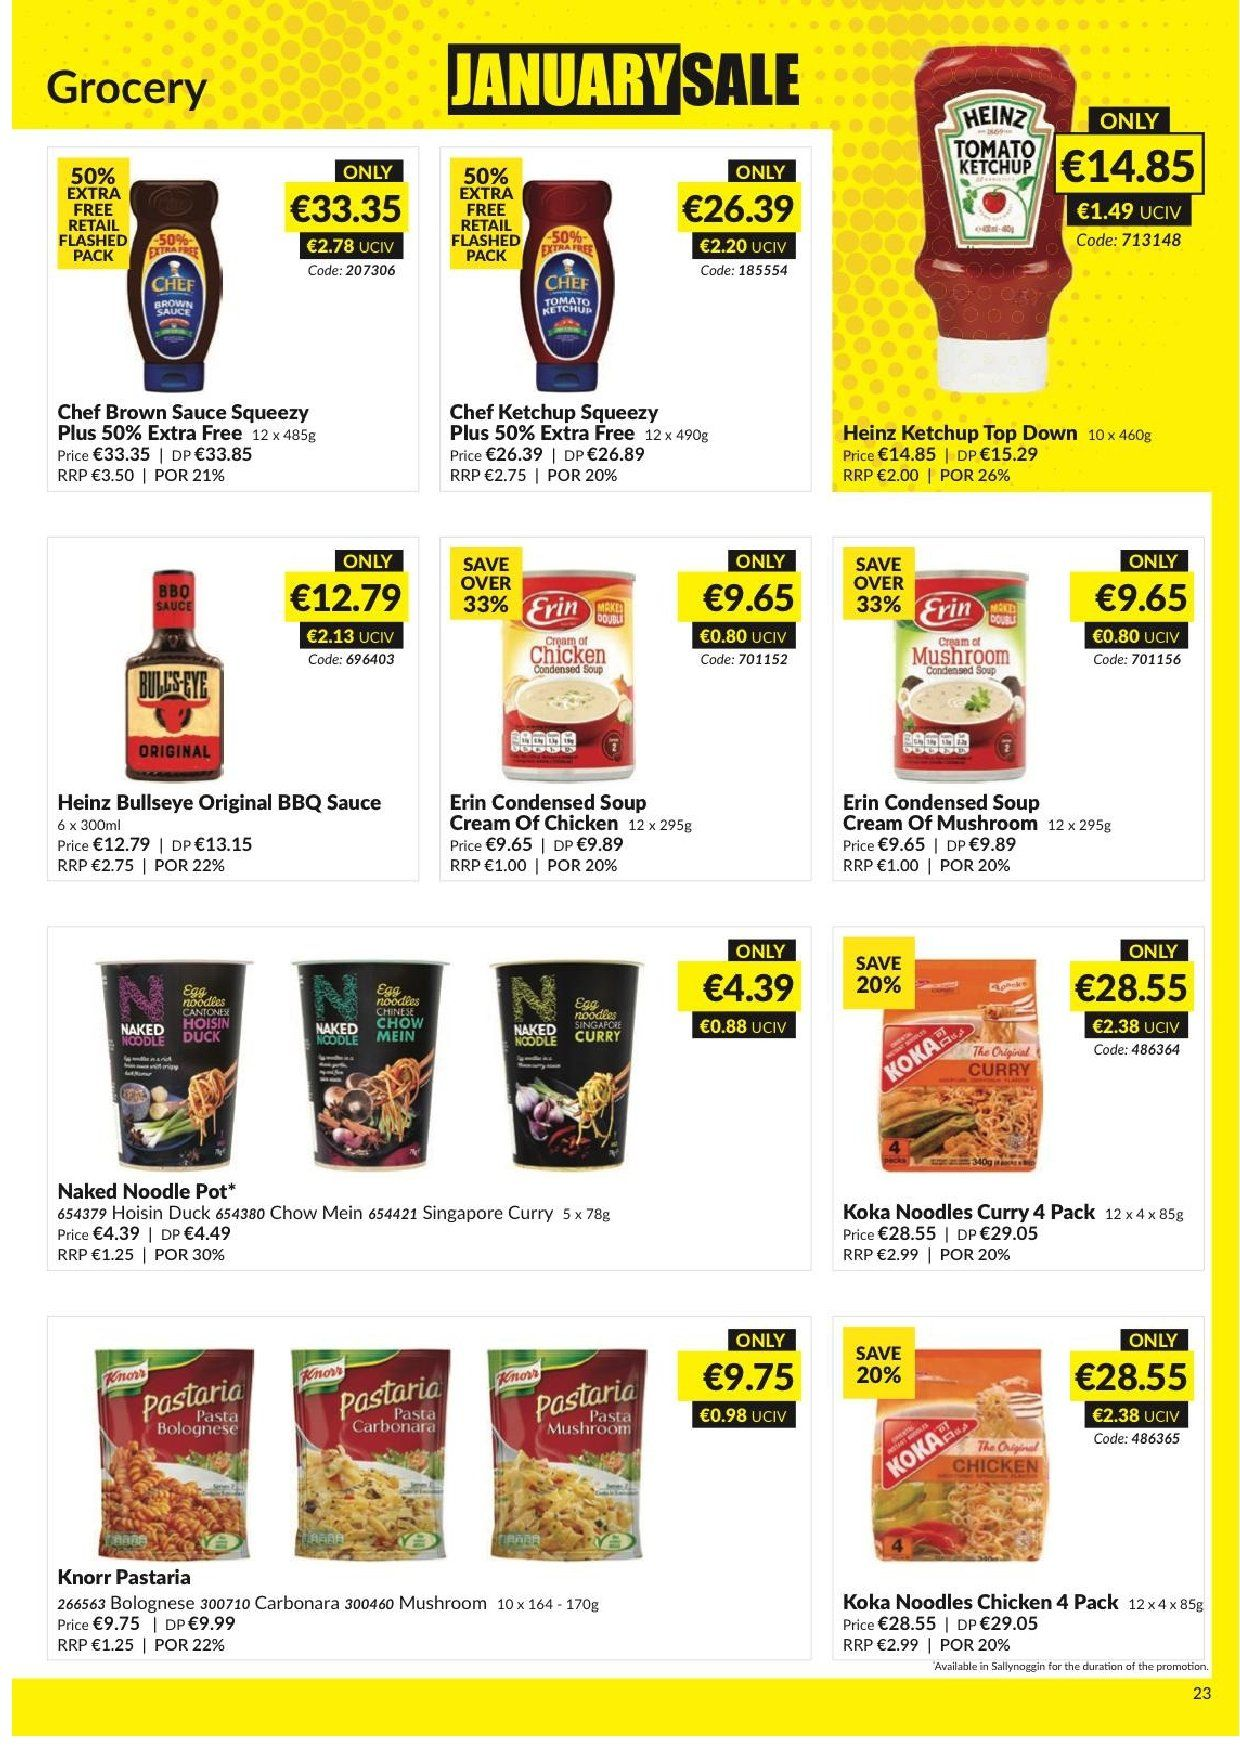 MUSGRAVE Market Place offer  - 23.12.2018 - 19.1.2019 - Sales products - mushroom, mushroom soup, condensed soup, soup, Knorr, curry, sauce, Heinz, noodle, barbecue sauce, hoisin sauce, ketchup, brown sauce, chicken, pot. Page 22.